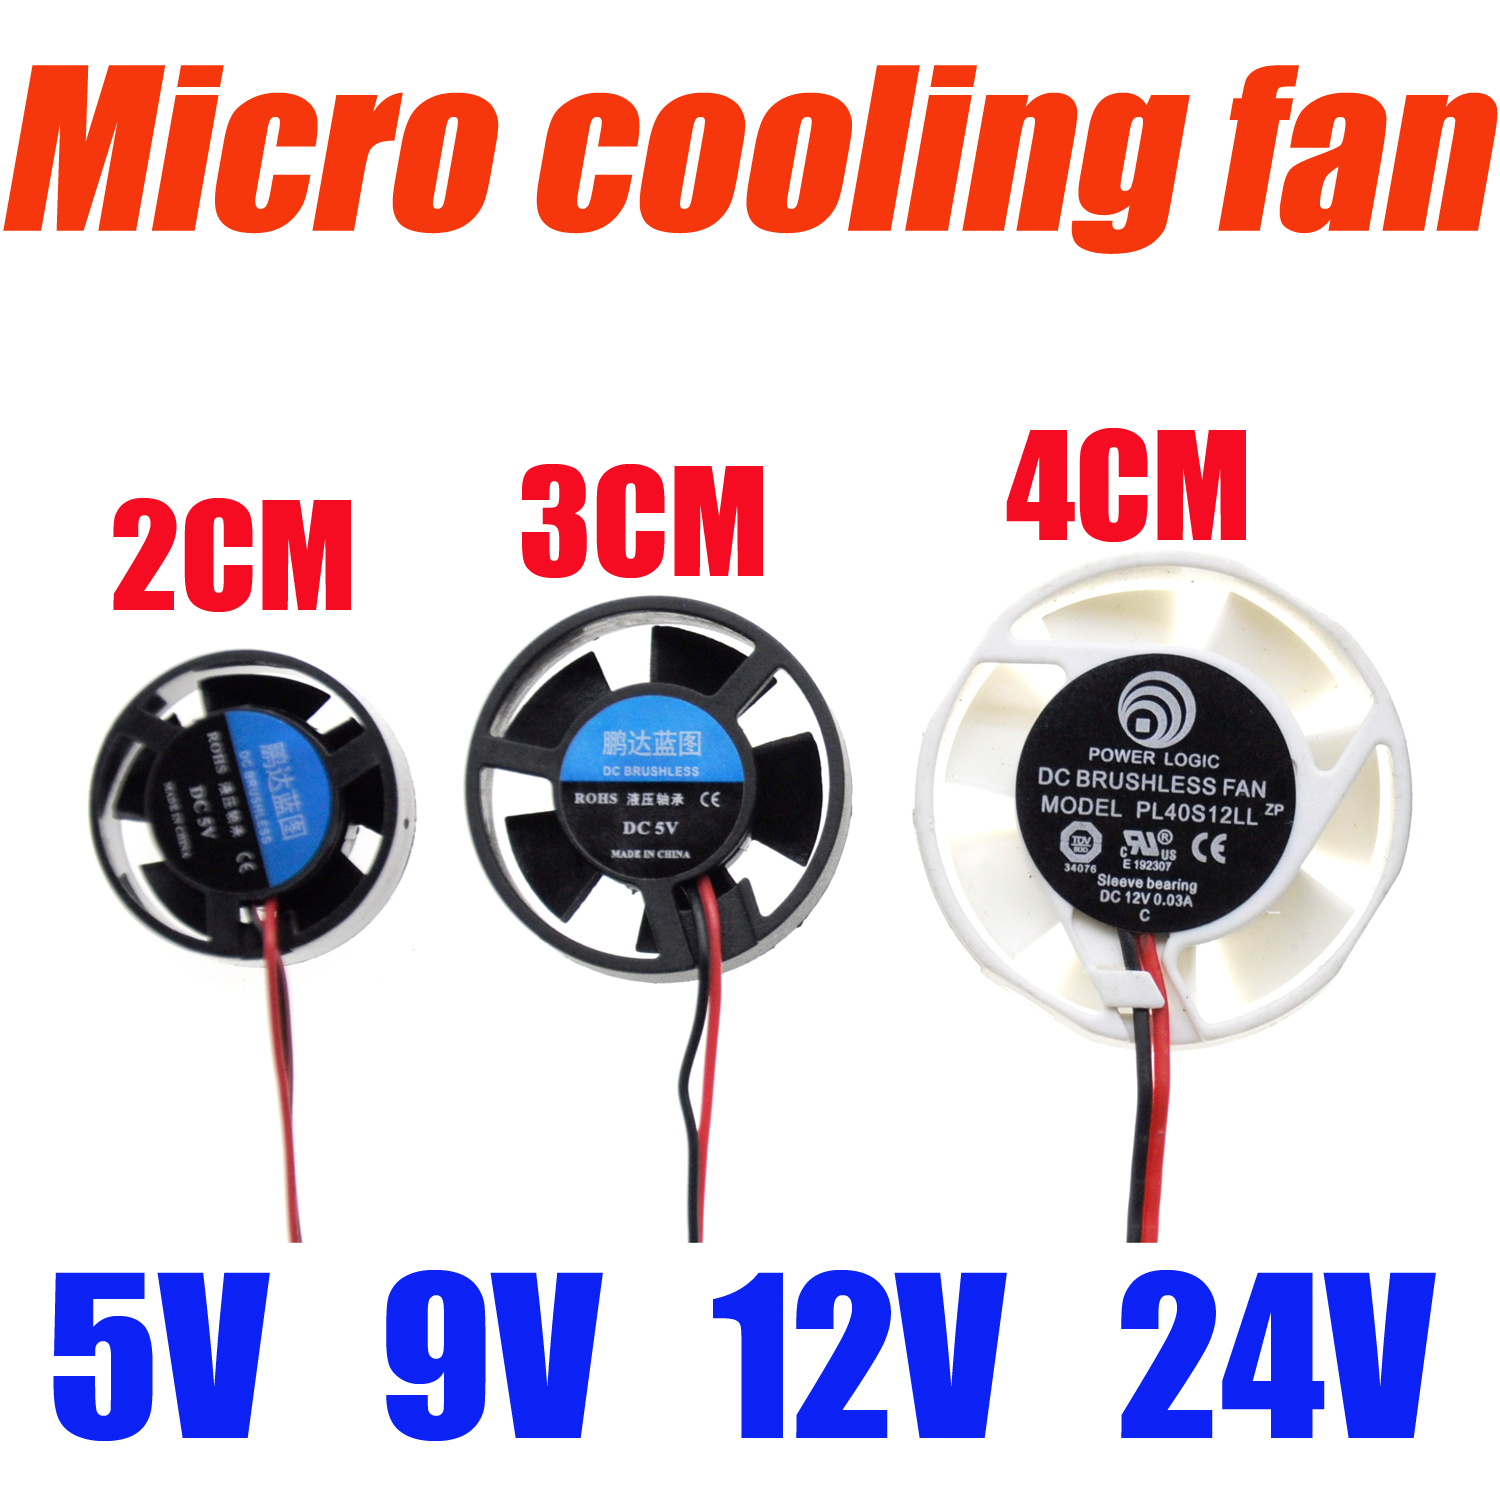 2CM 3CM 4CM 25x10mm 30x10mm 40x10mm 5V 9V 12V 24V Round Mini Micro Cooling Fan For LED Lamps Computer Radiator